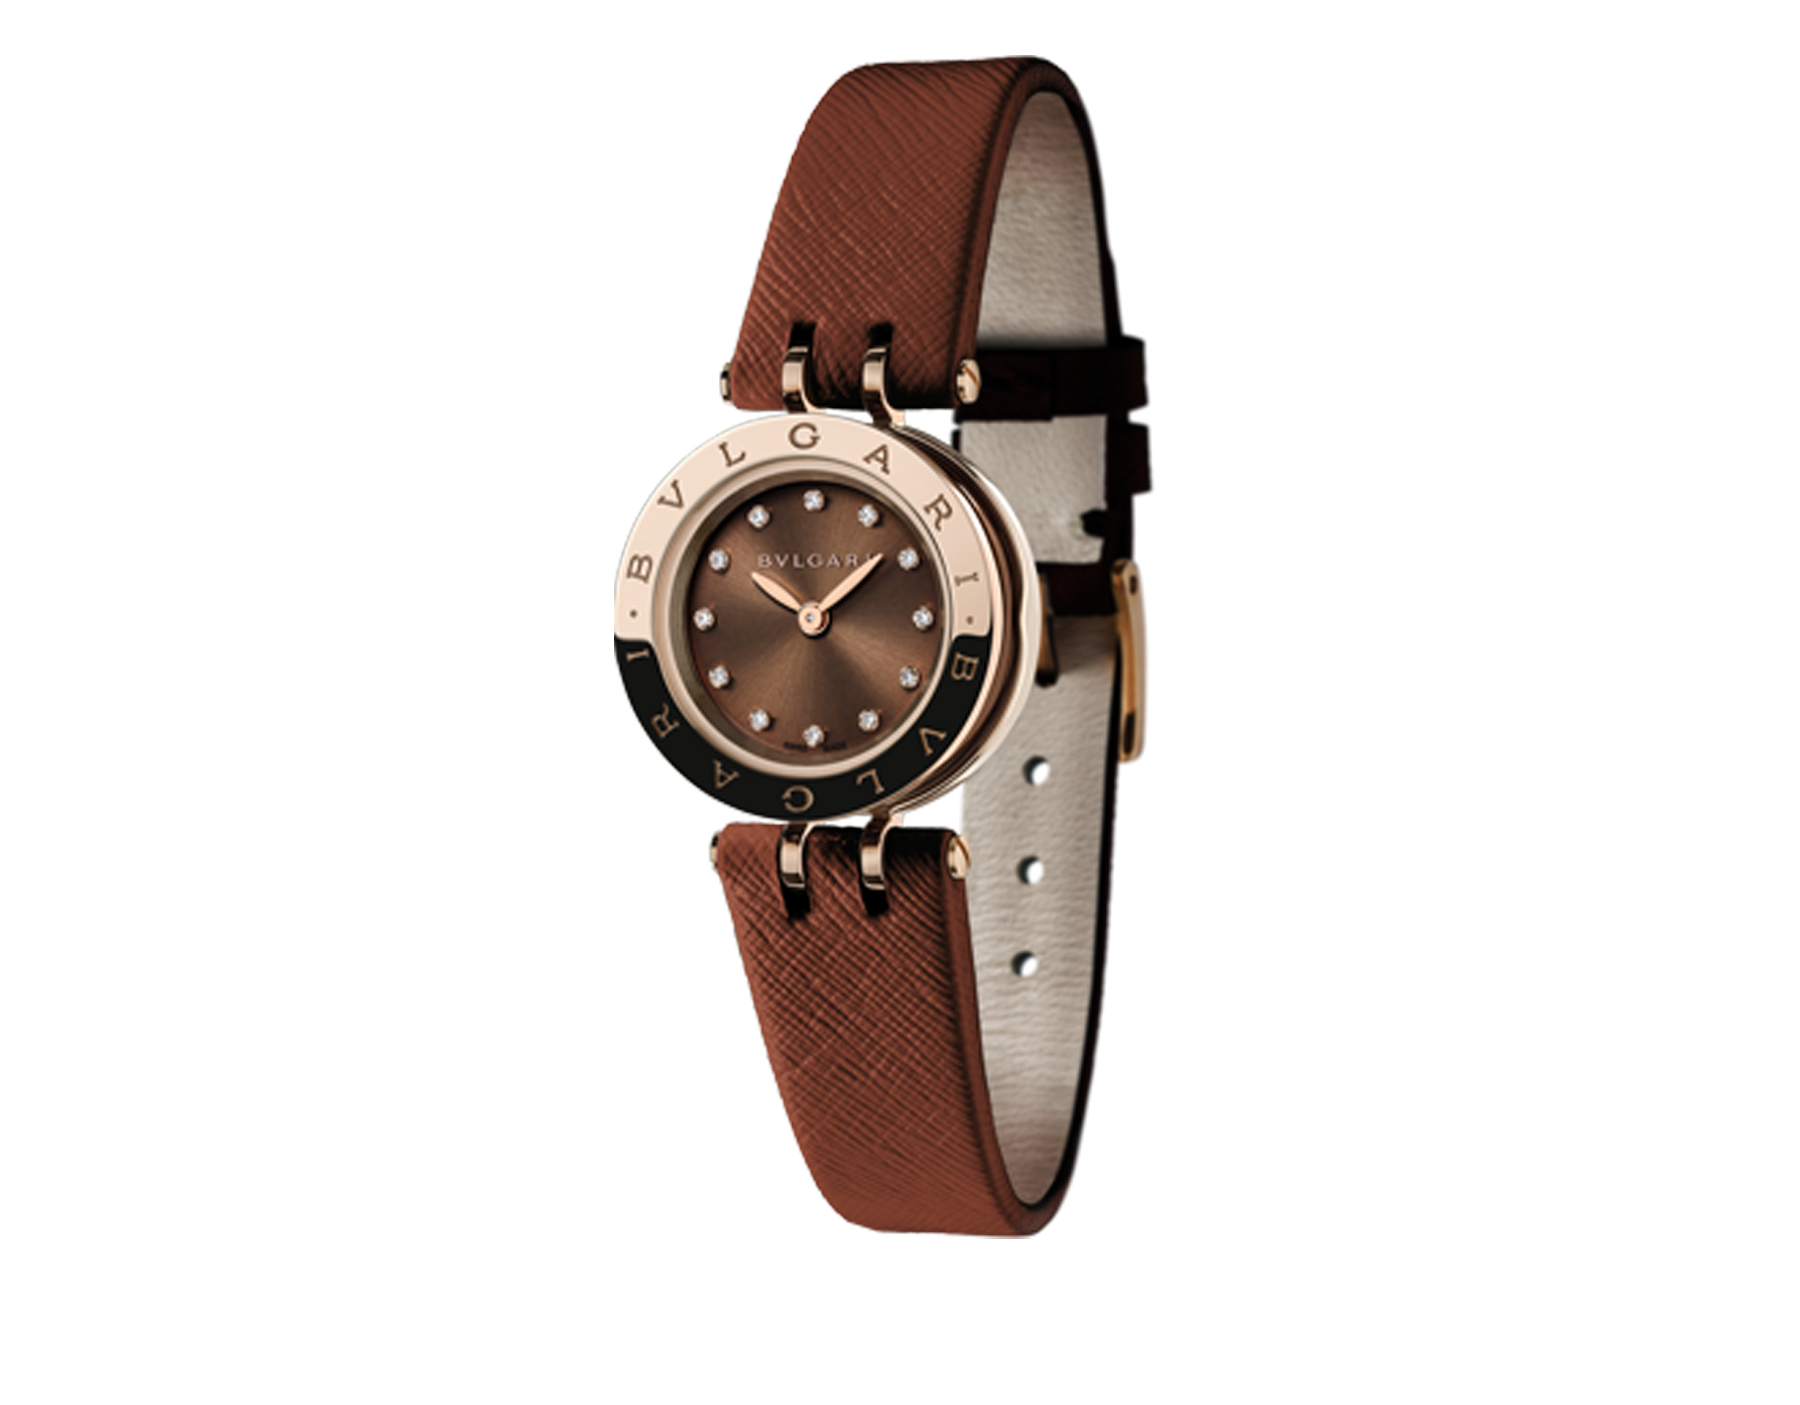 Bzero1-Watch-BVLGARI-102321-E-1.png